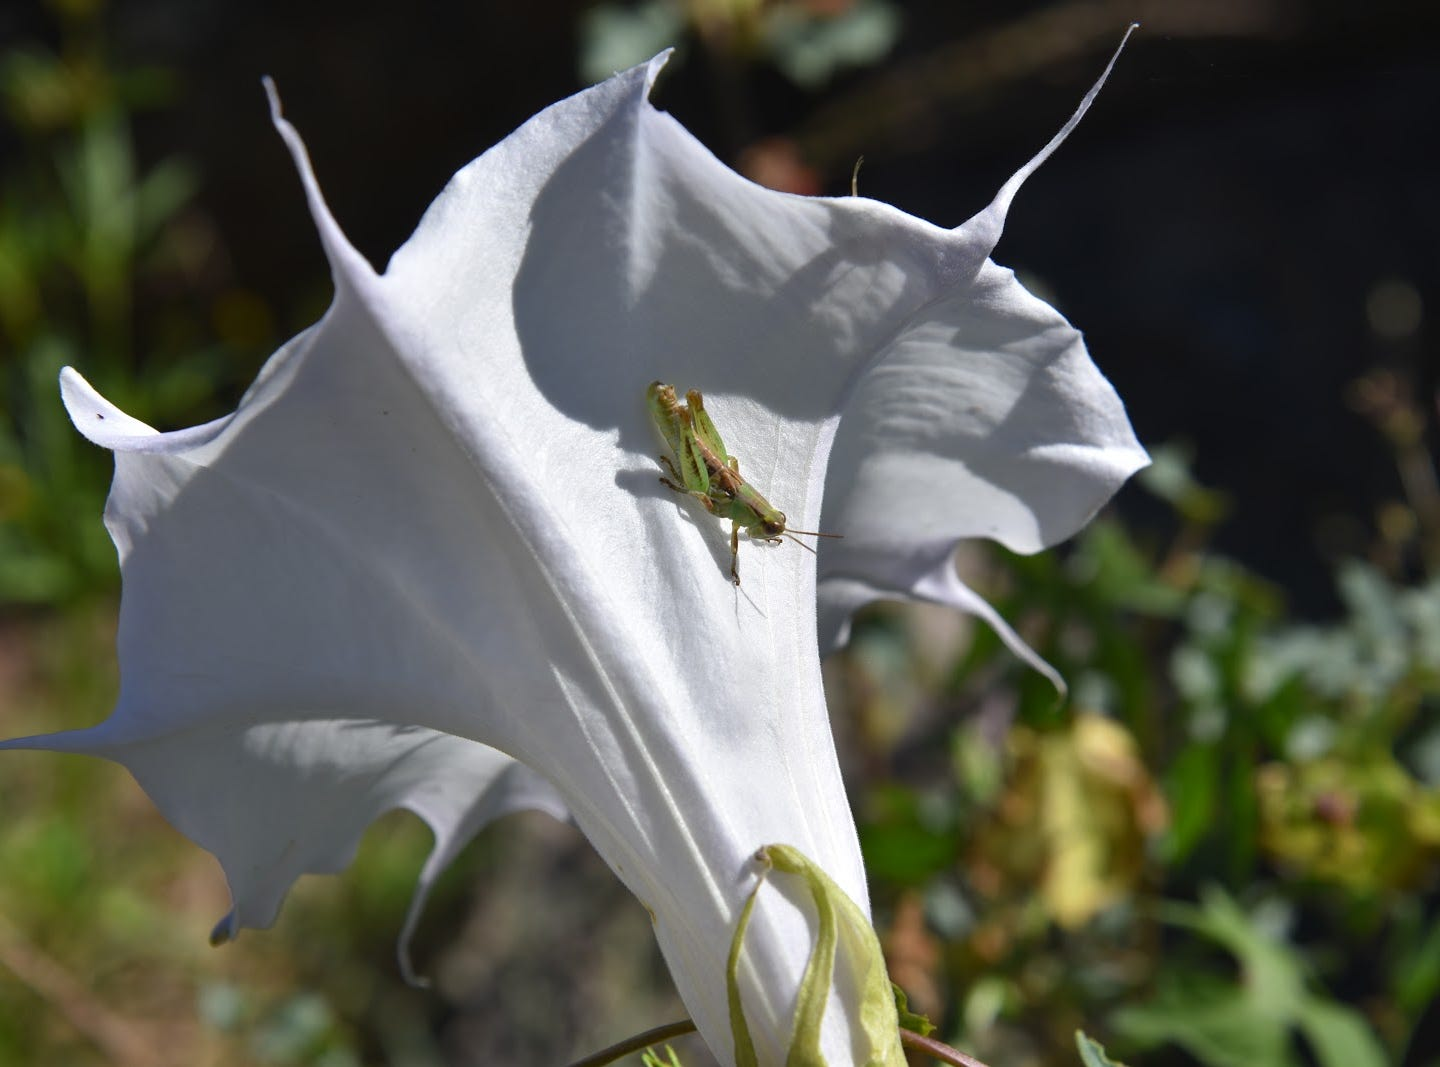 A grasshopper alights on a sacred datura flower.